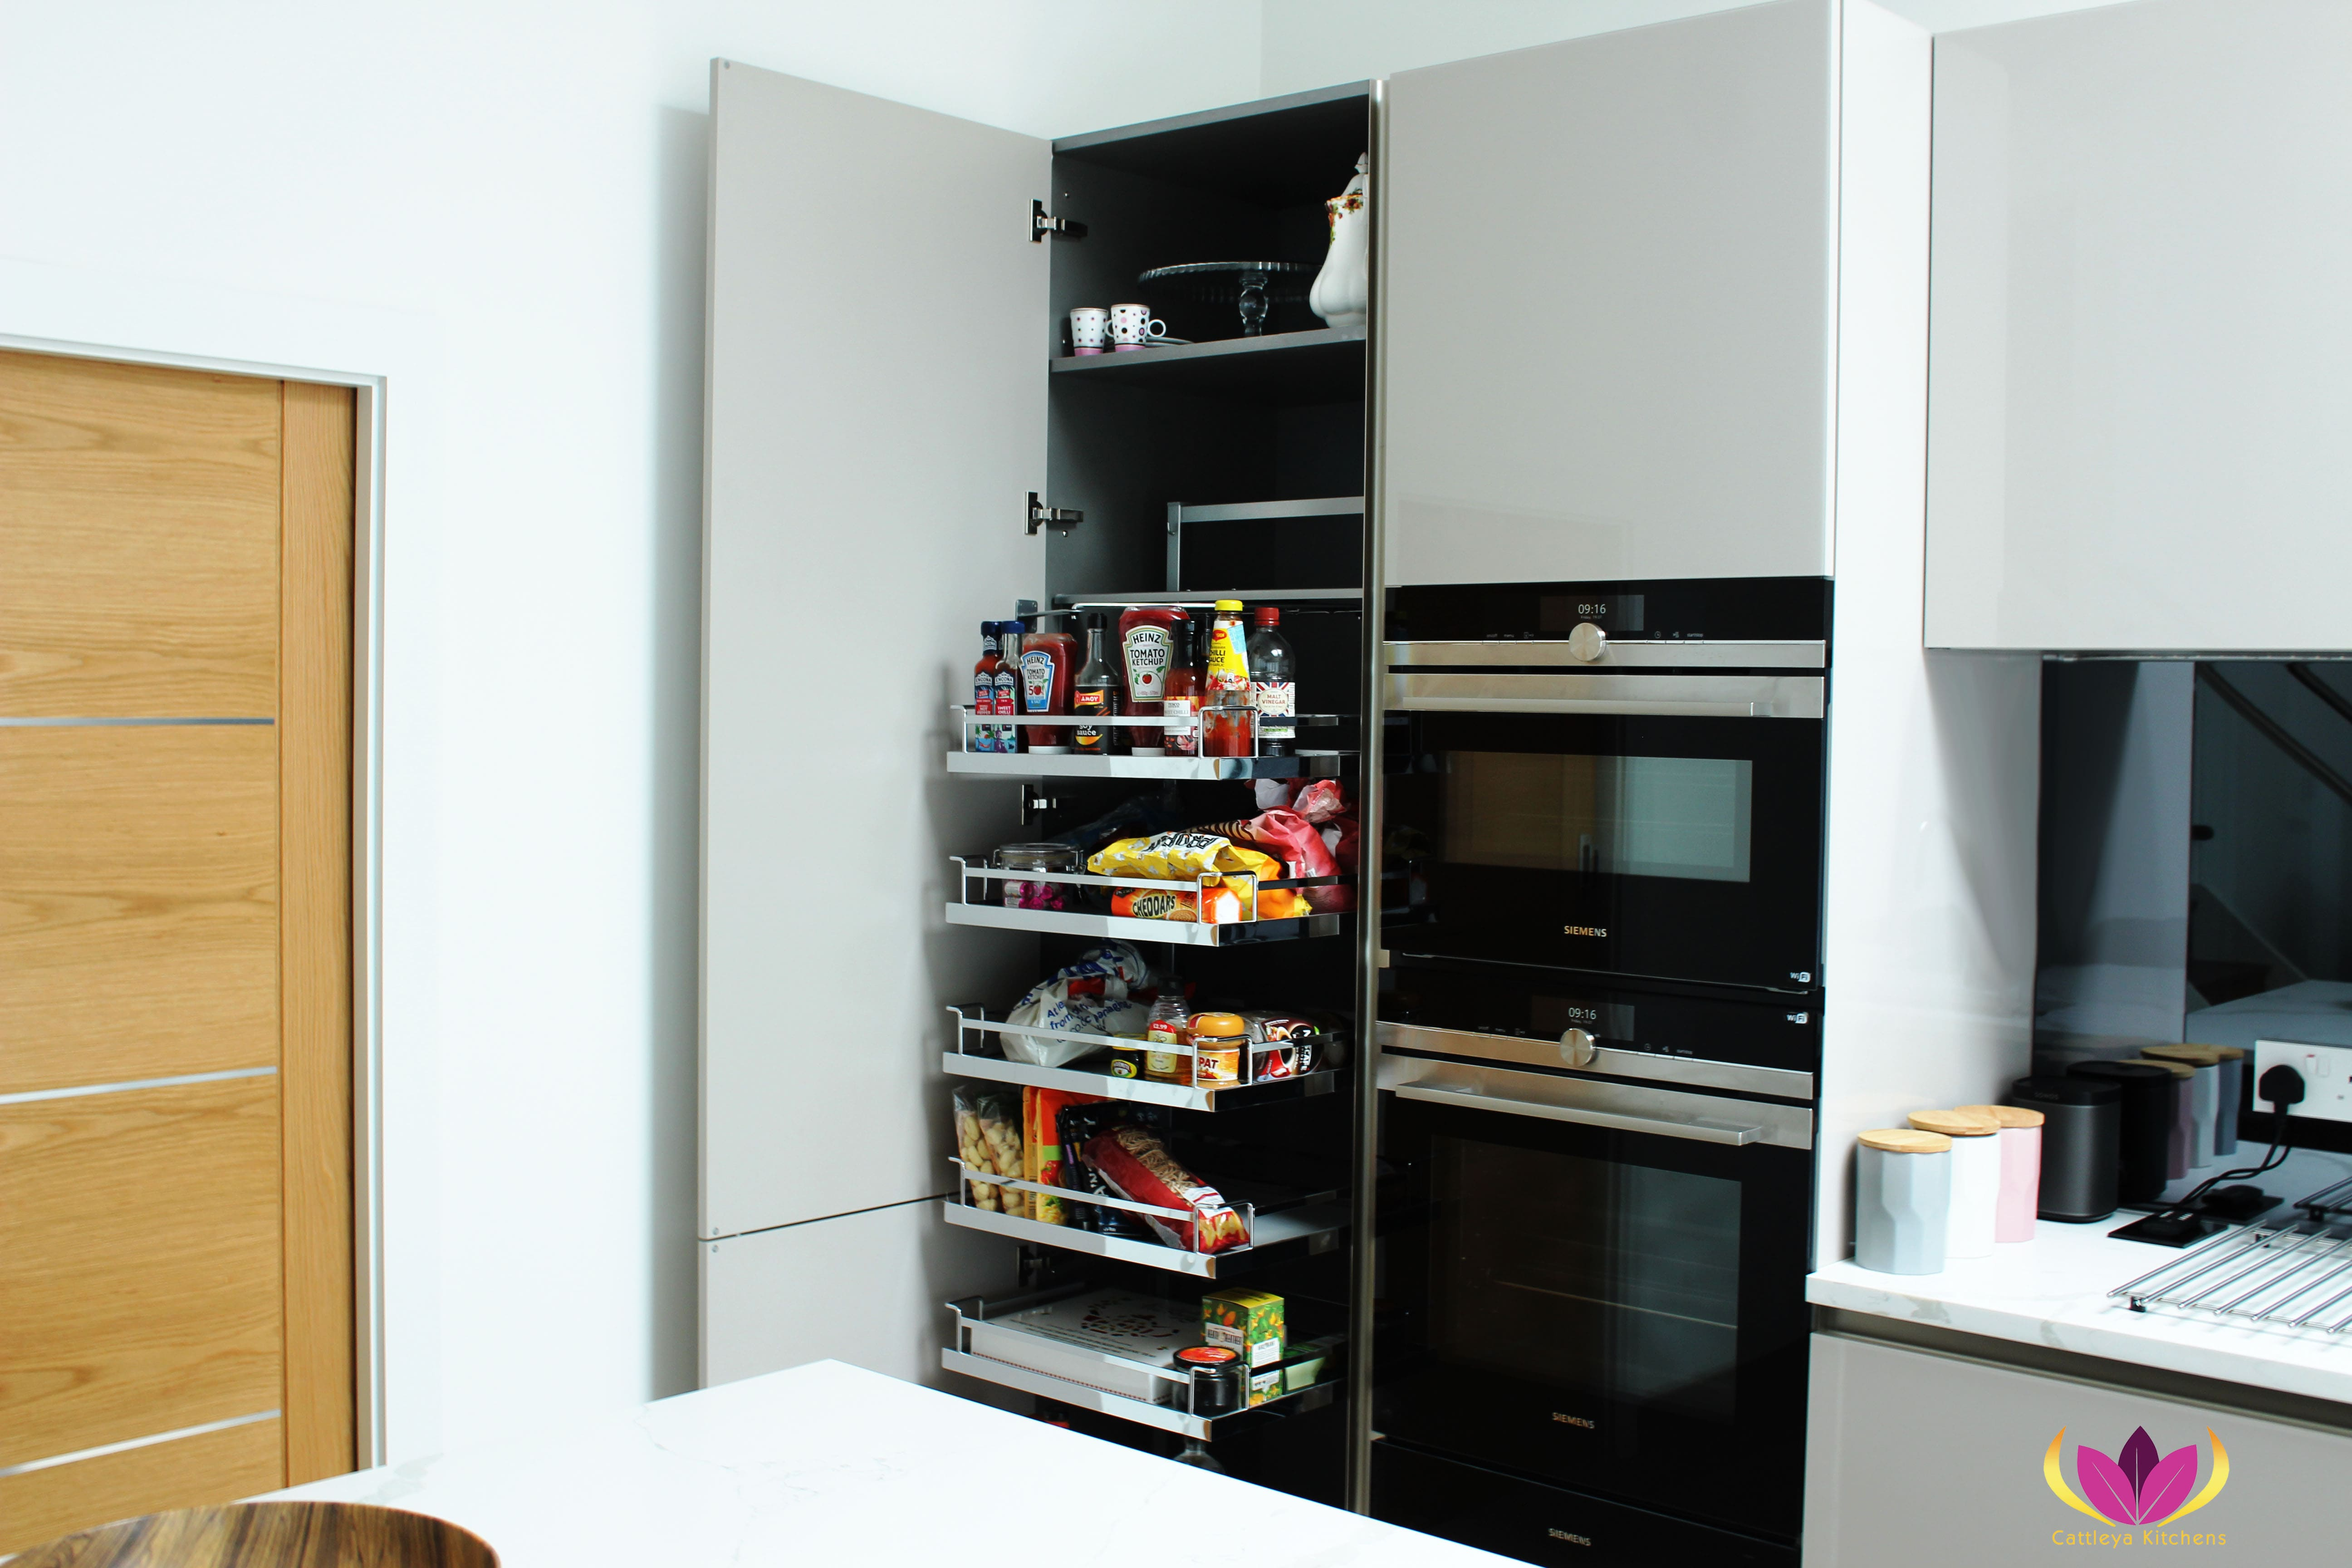 Inside tall cabinet units integrated with sliding metal fittings - Greenford Finished Kitchen Project